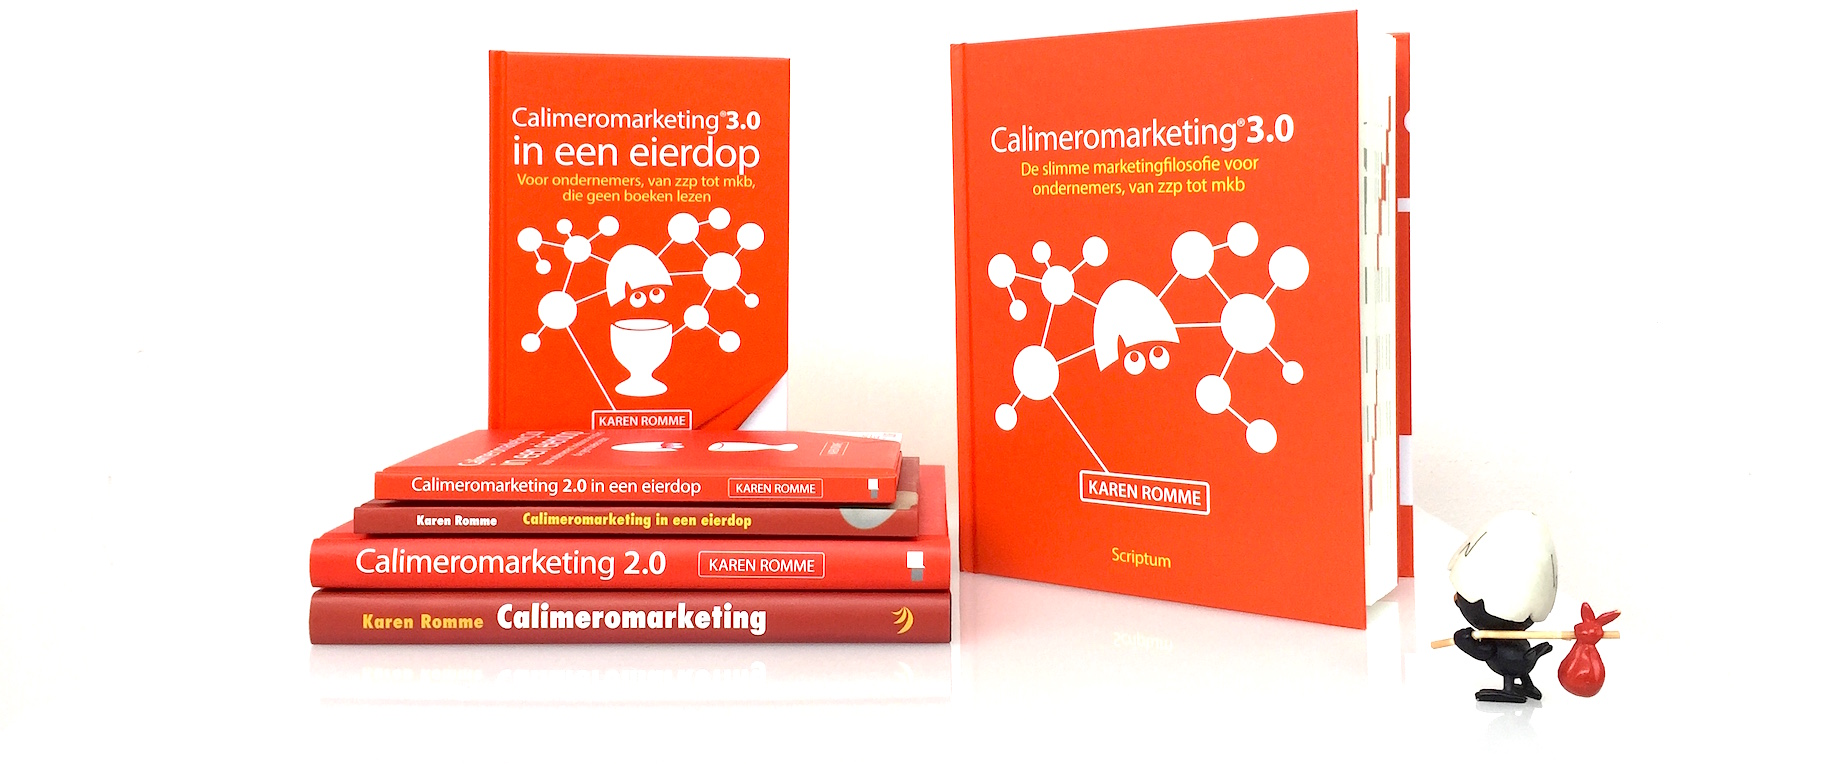 Calimeromarketing 3.0 van karen romme marketing voor zzp